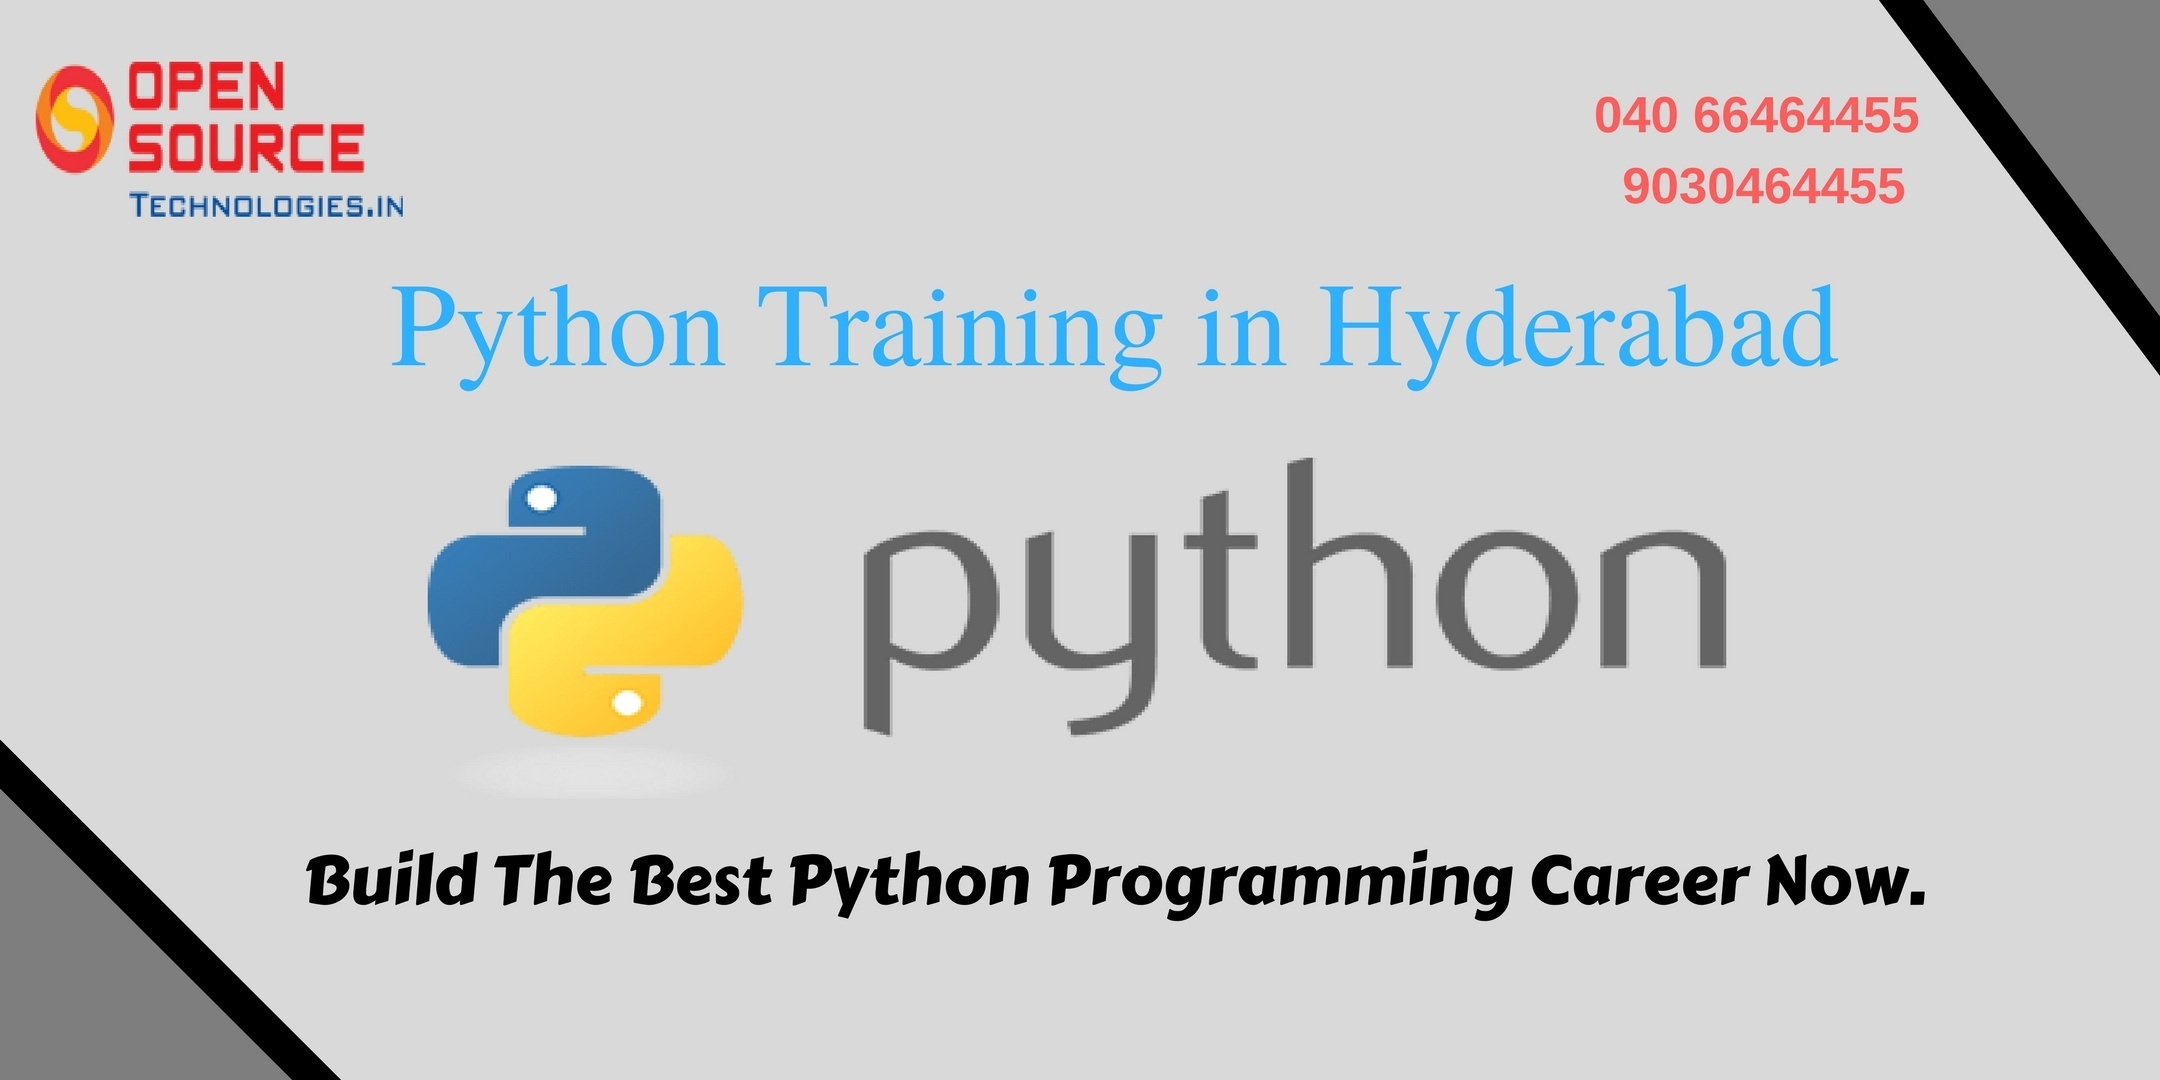 How to become an expert Python programmer - Quora